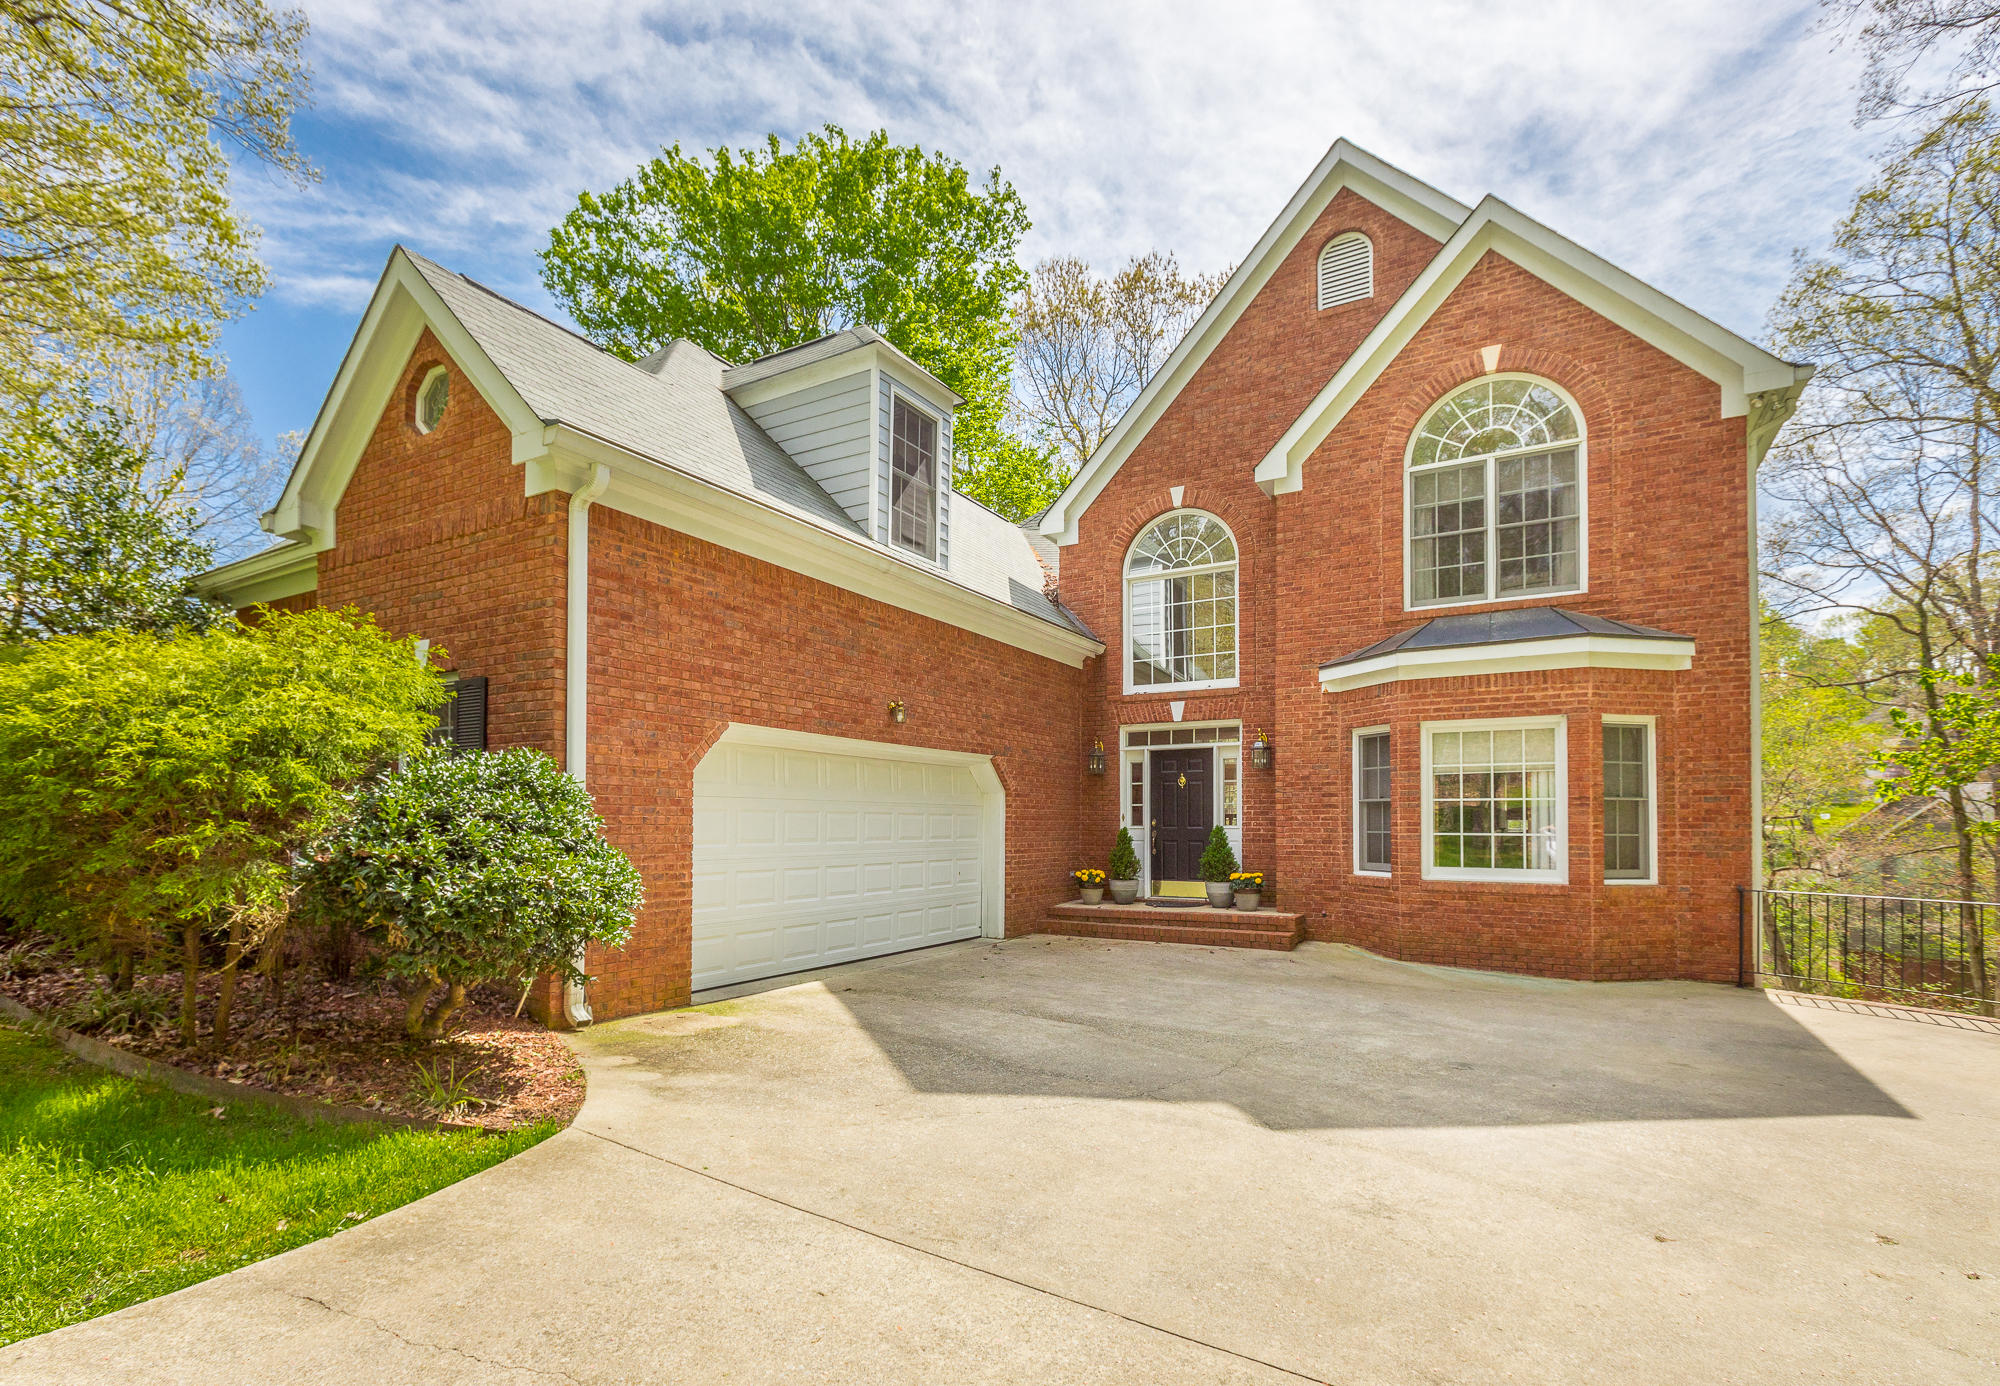 1814 Oak Cove Dr Chattanooga #homeforsaleinchattanooga, #ChattanoogaHomeForSale, #ThePaulaMcDanielGroup, #Chattanoogarealestateforsale, #Chattanoogarealestateforsale, #allbrickhomeforsale#, ThePaulaMcDanielGroup, #homeforsalewith - The Paula McDaniel Group With Real Estate Partners Chattanooga LLC Luxury homes for sale in Chattanooga and N. GA by The Paula McDaniel Group. Chattanooga homes and land for sale by The Paula McDaniel Group with Real Estate Partners Chattanooga LLC